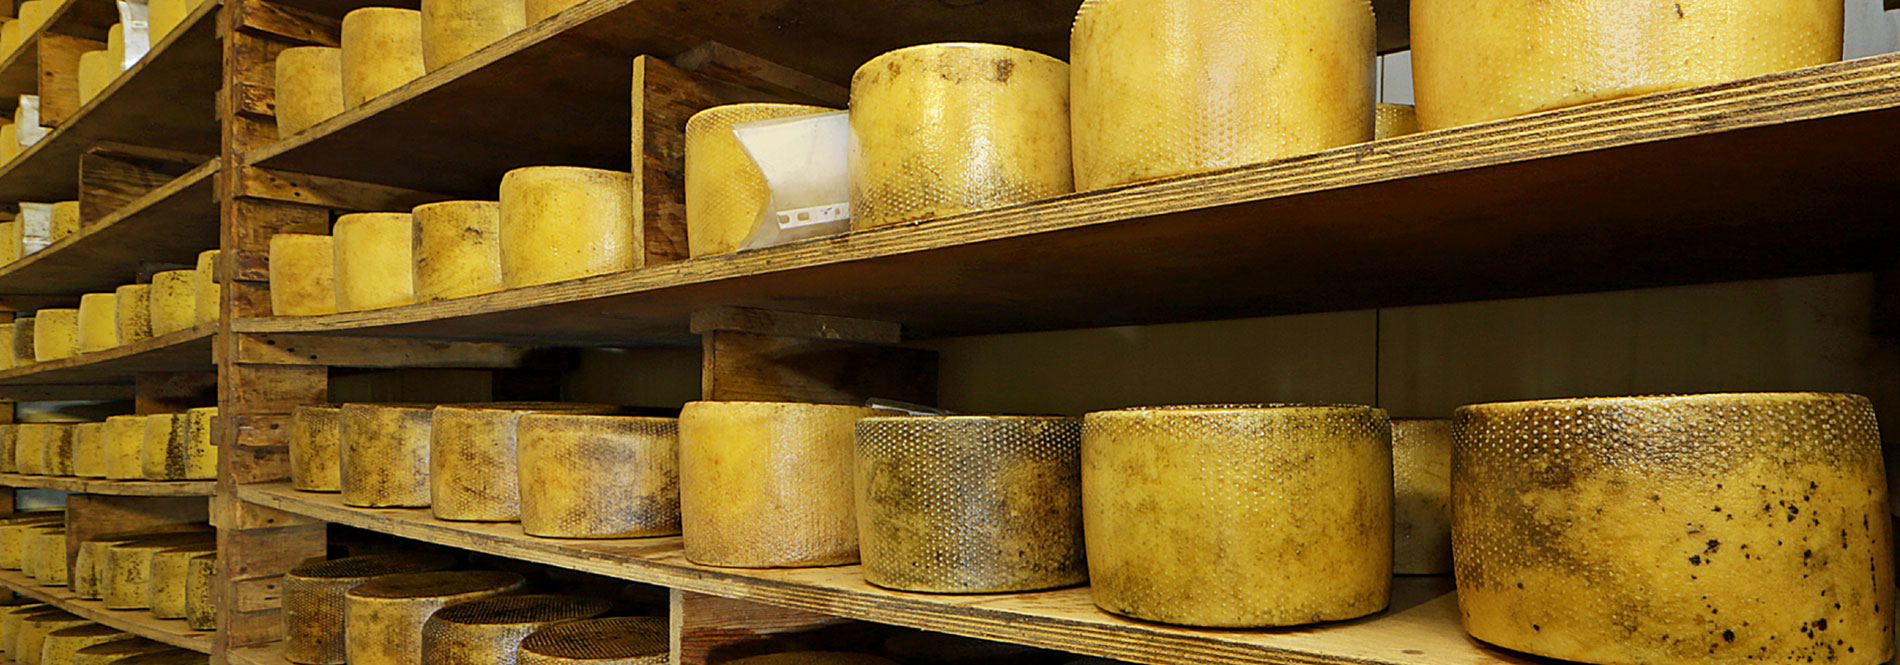 La Quercia italian cheese factory Guidonia-Rome